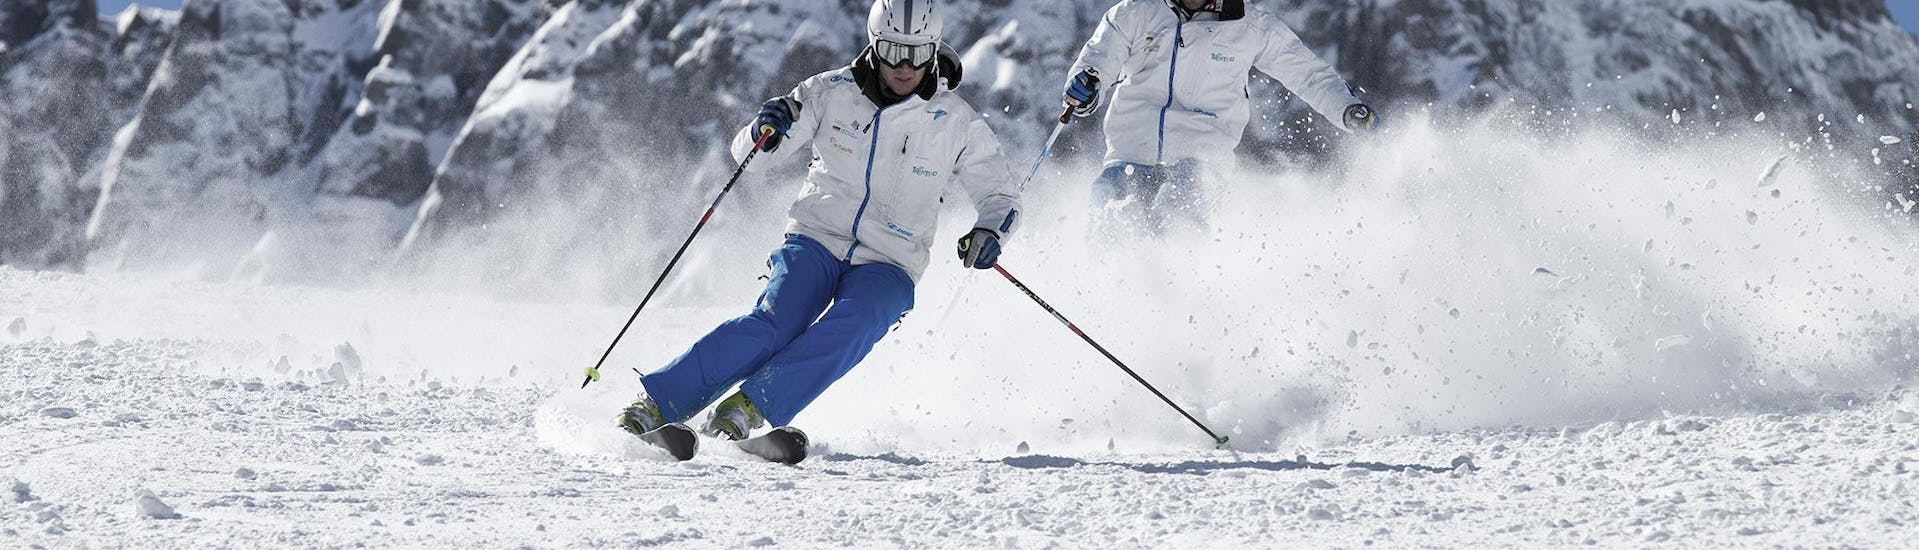 Skiing Lessons for Adults - Beginners with Skischule Egon Hirt - Hero image